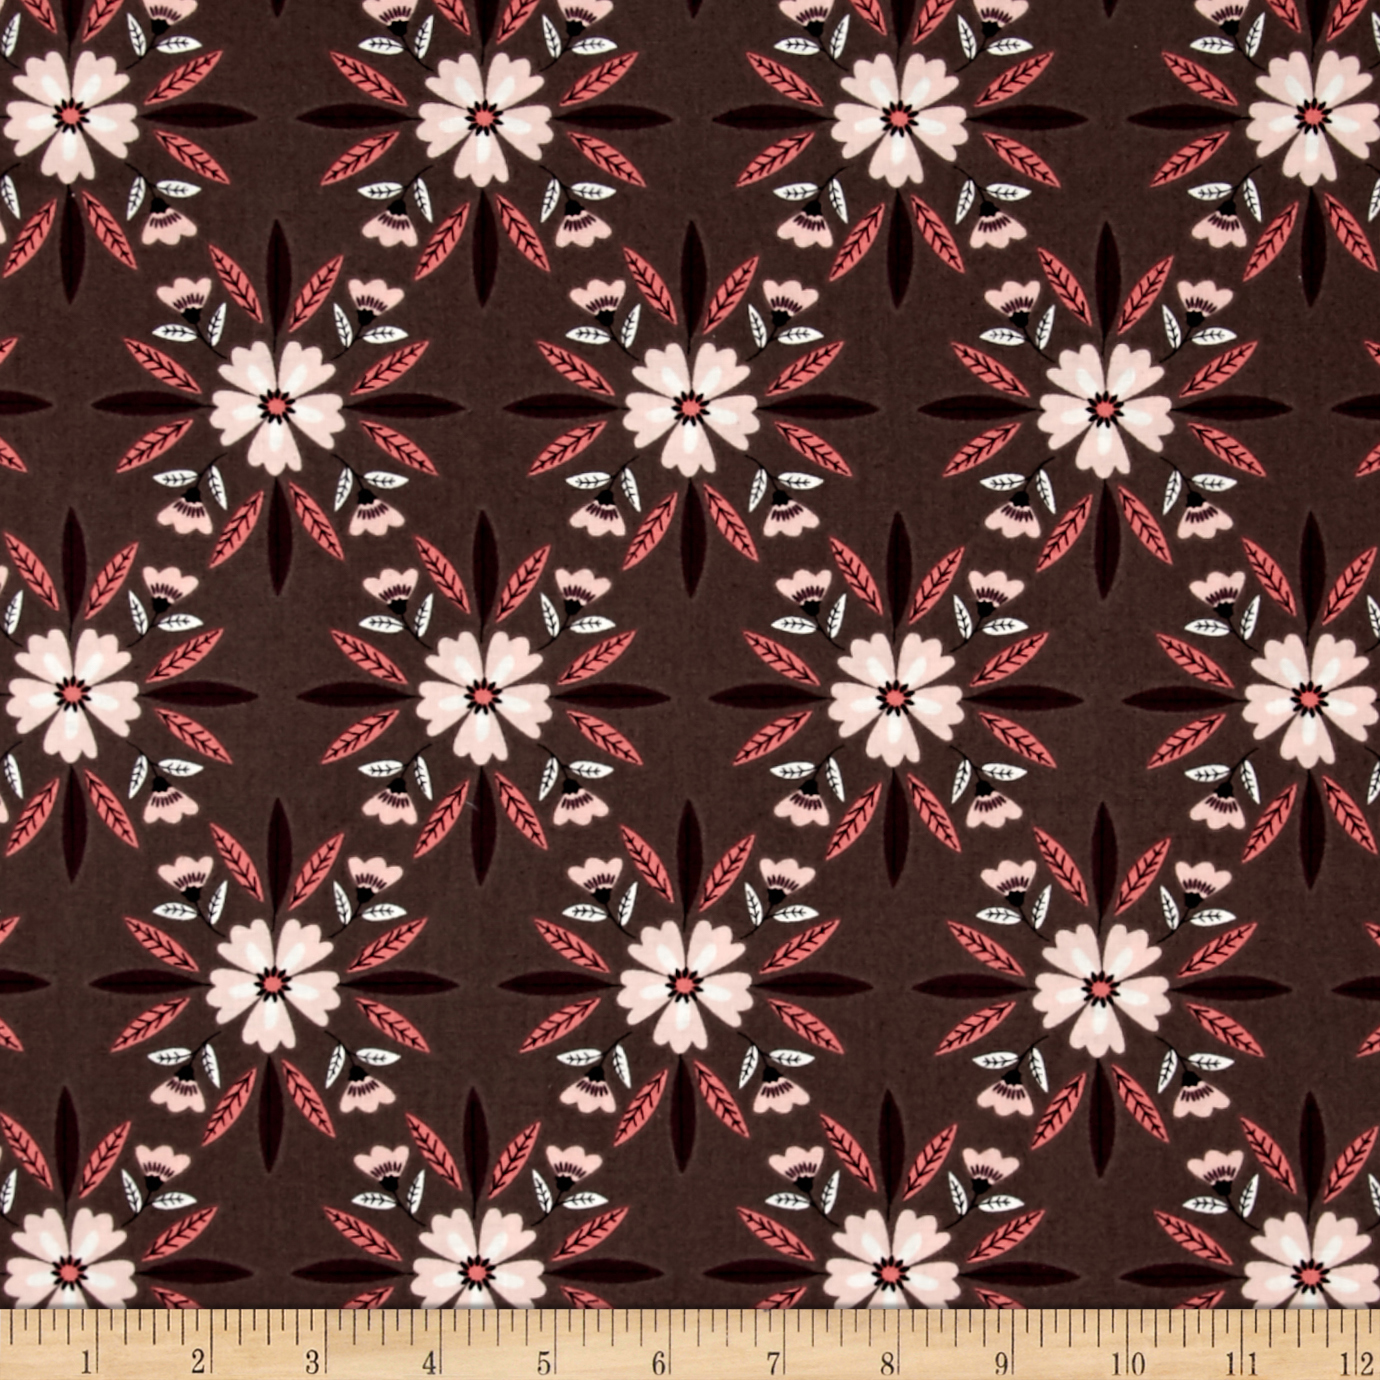 Captivate Mosaic Dark Taupe Fabric Style 446686 by Eugene in USA